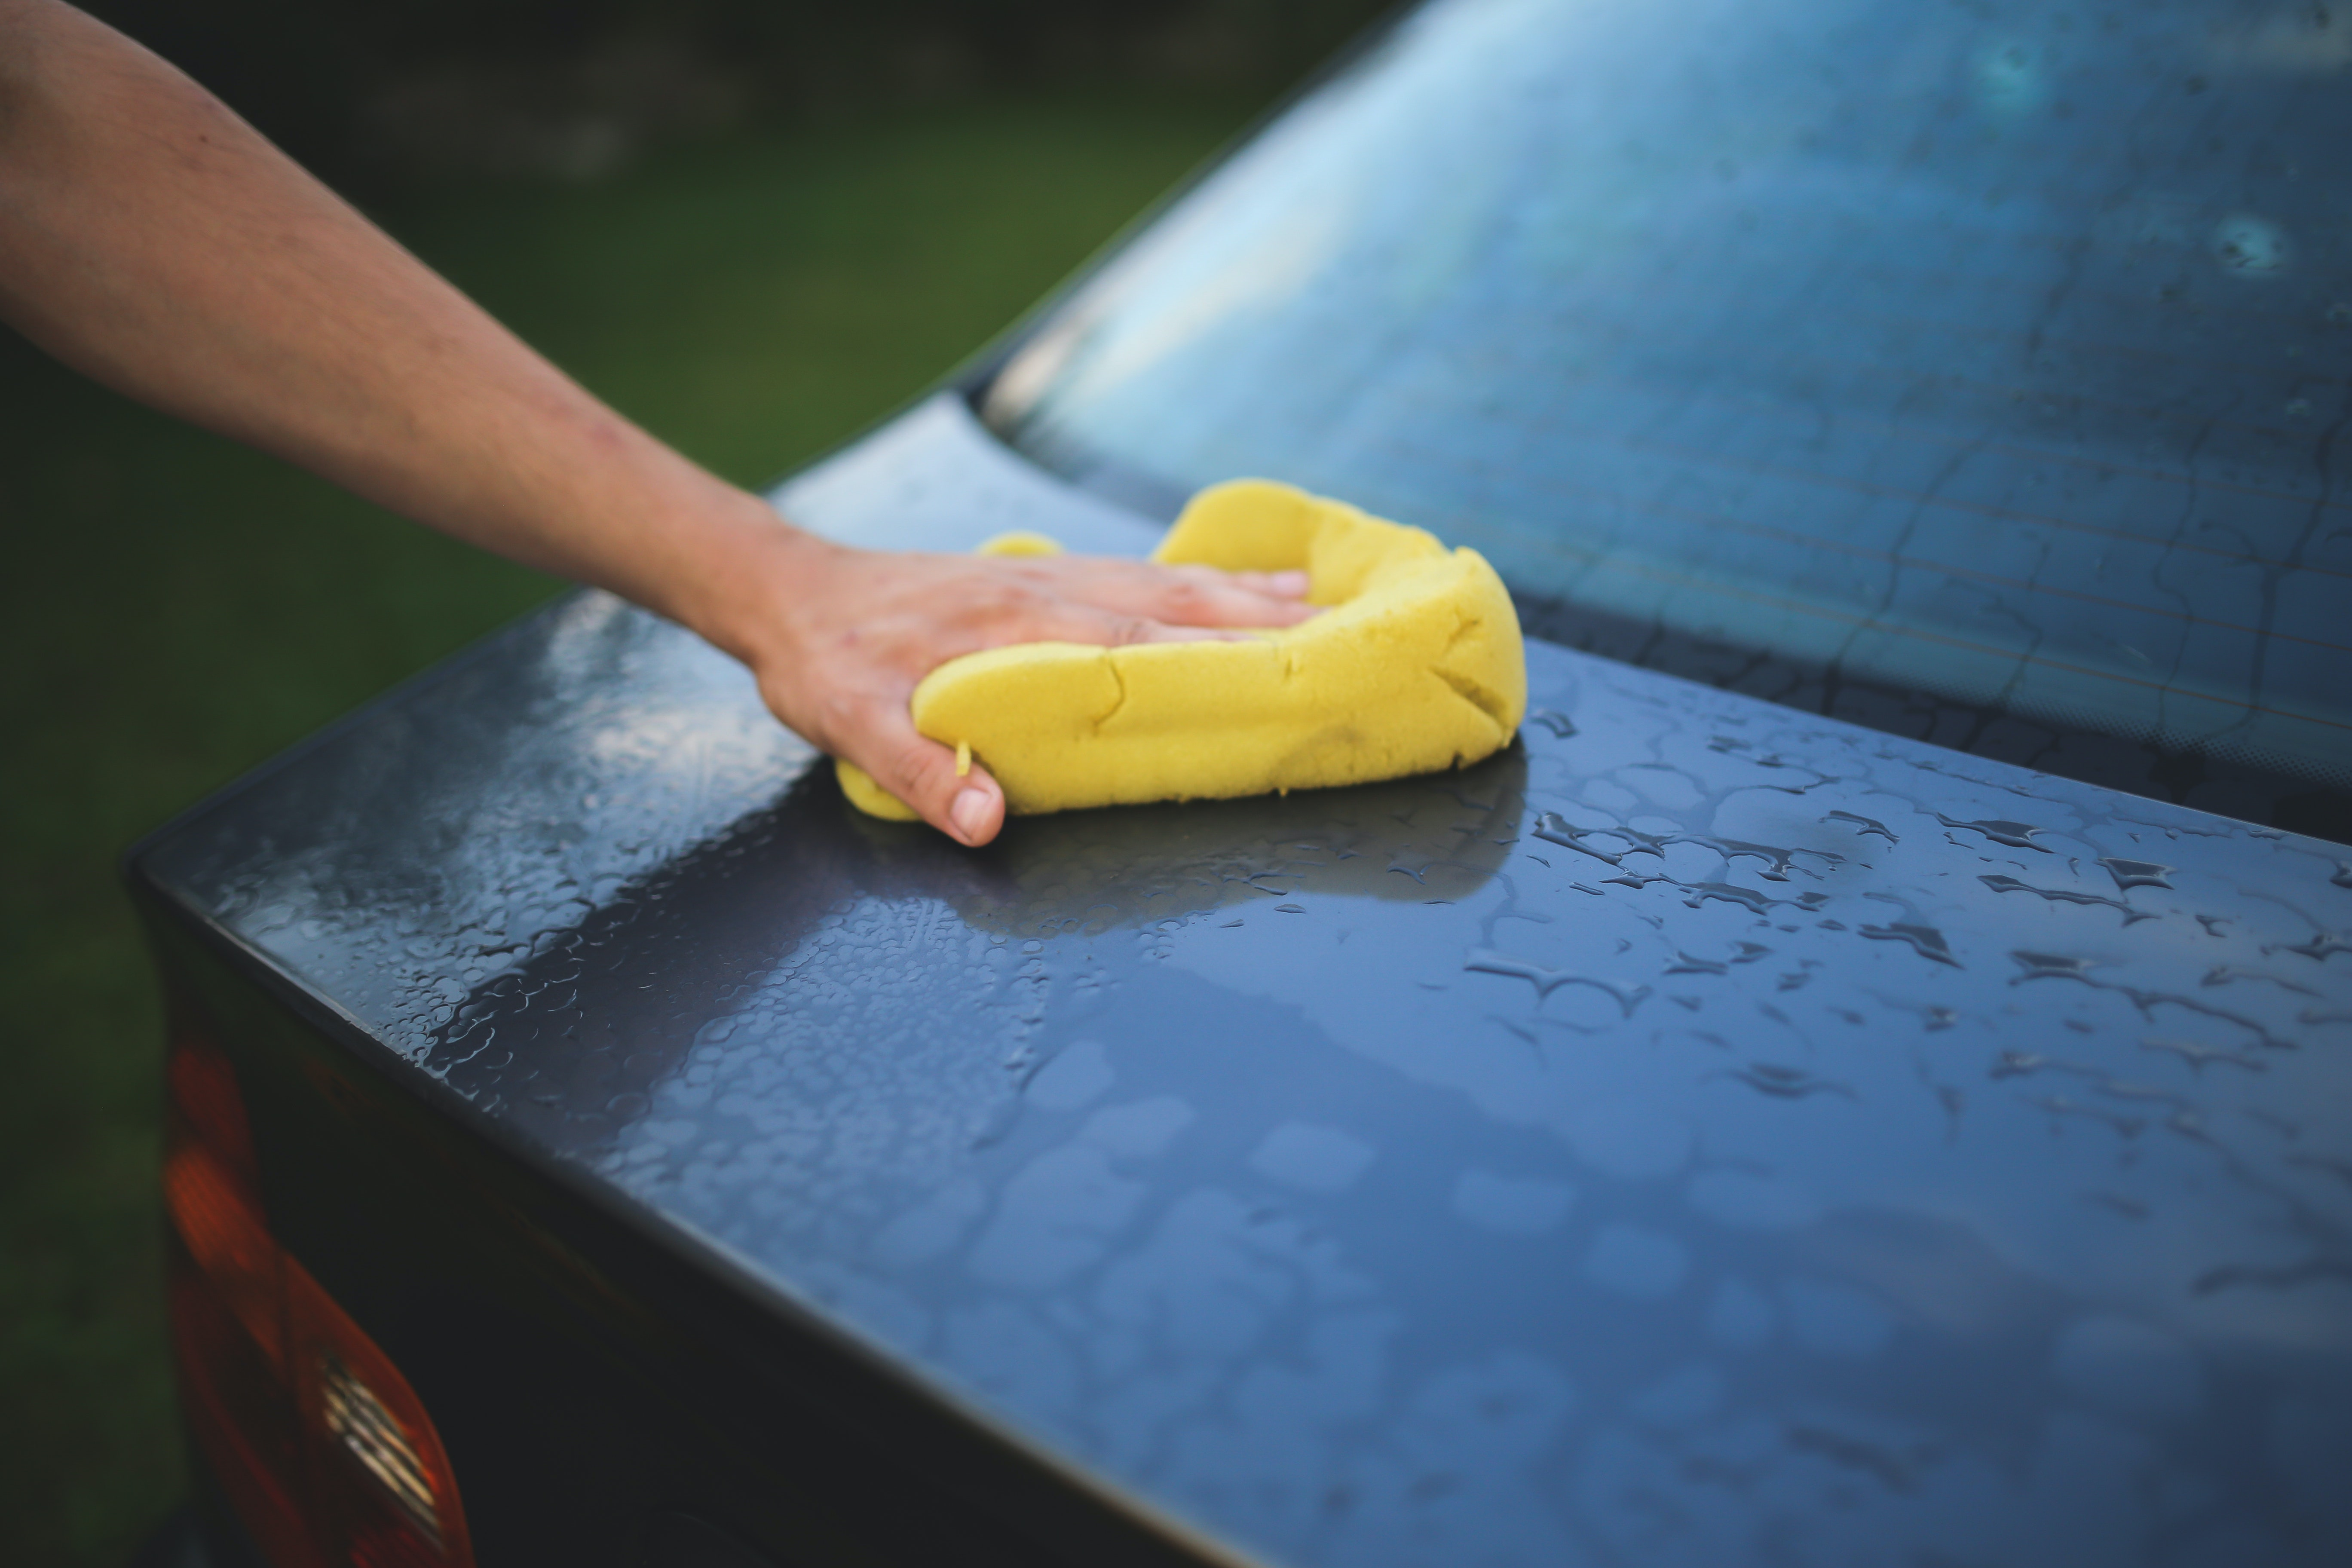 Top 10 Car Cleaning Products to Spruce Up Your Business